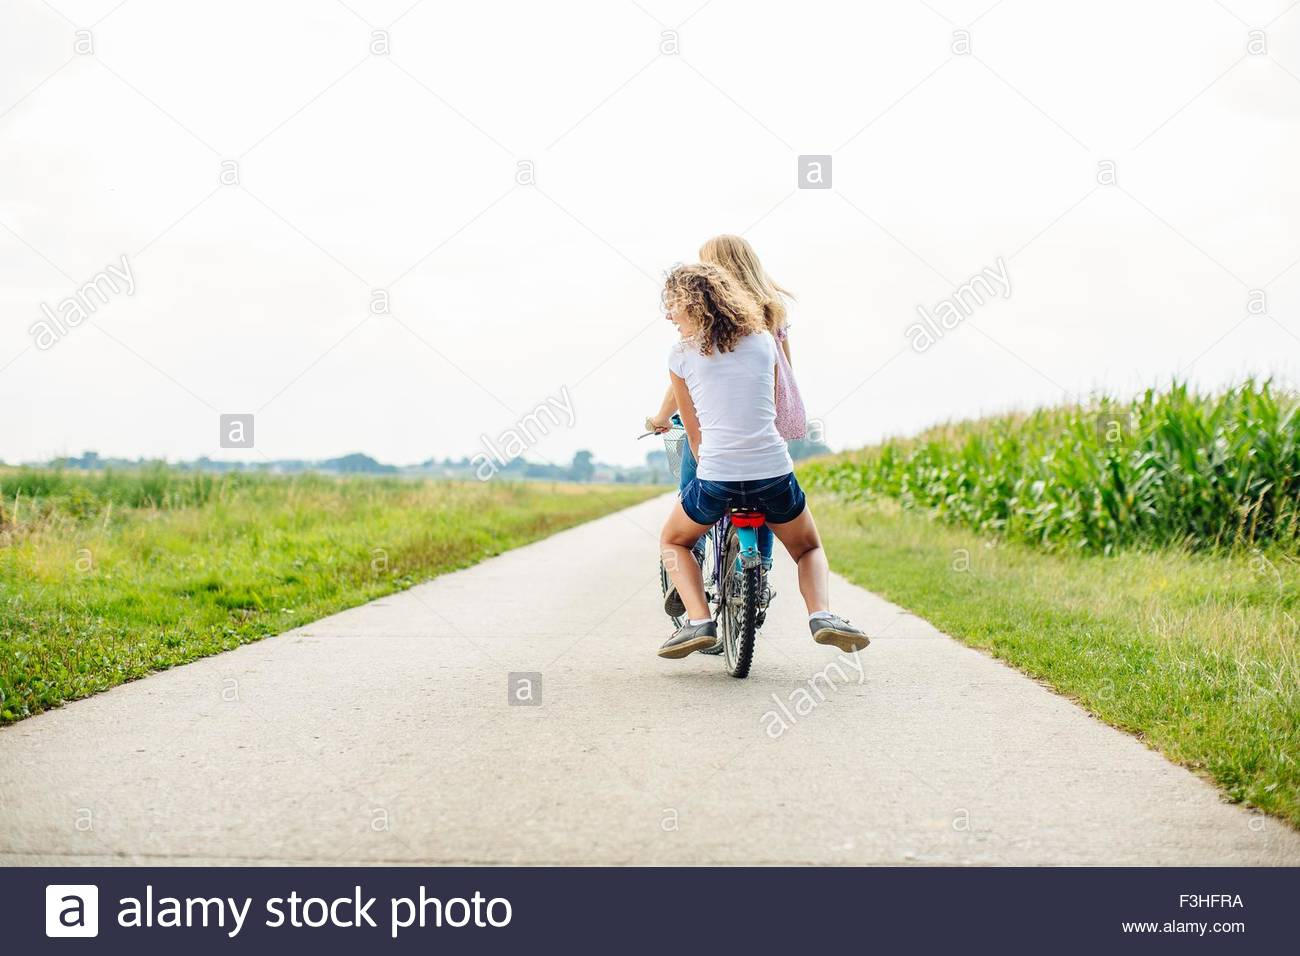 Rear view of two tween girls cycling along rural road - Stock Image